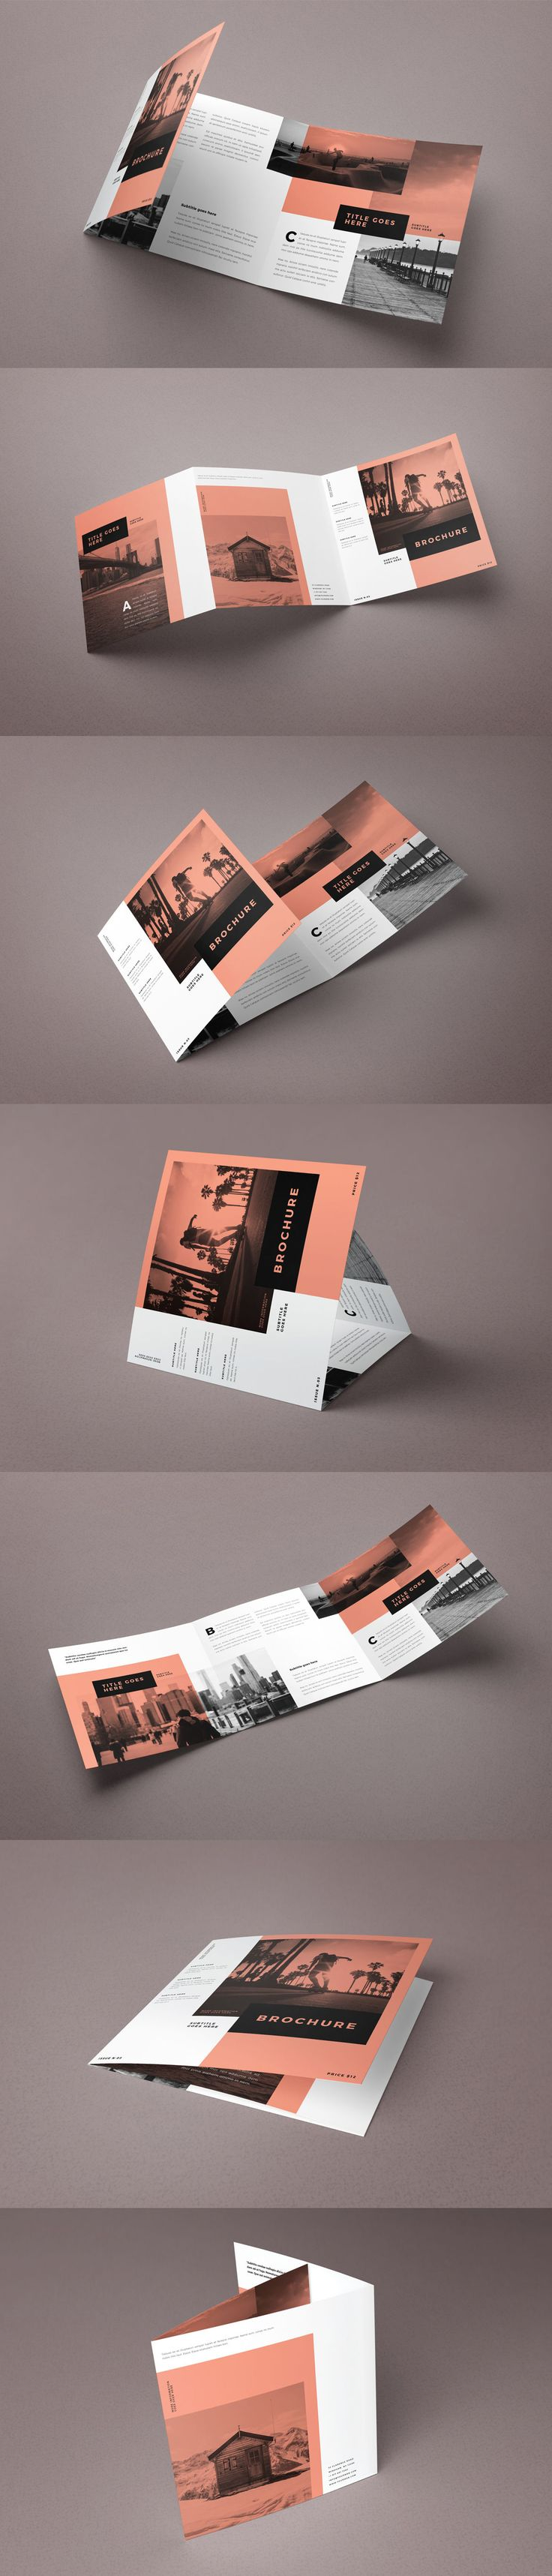 Square Minimal White Simple Trifold Brochure Template InDesign INDD